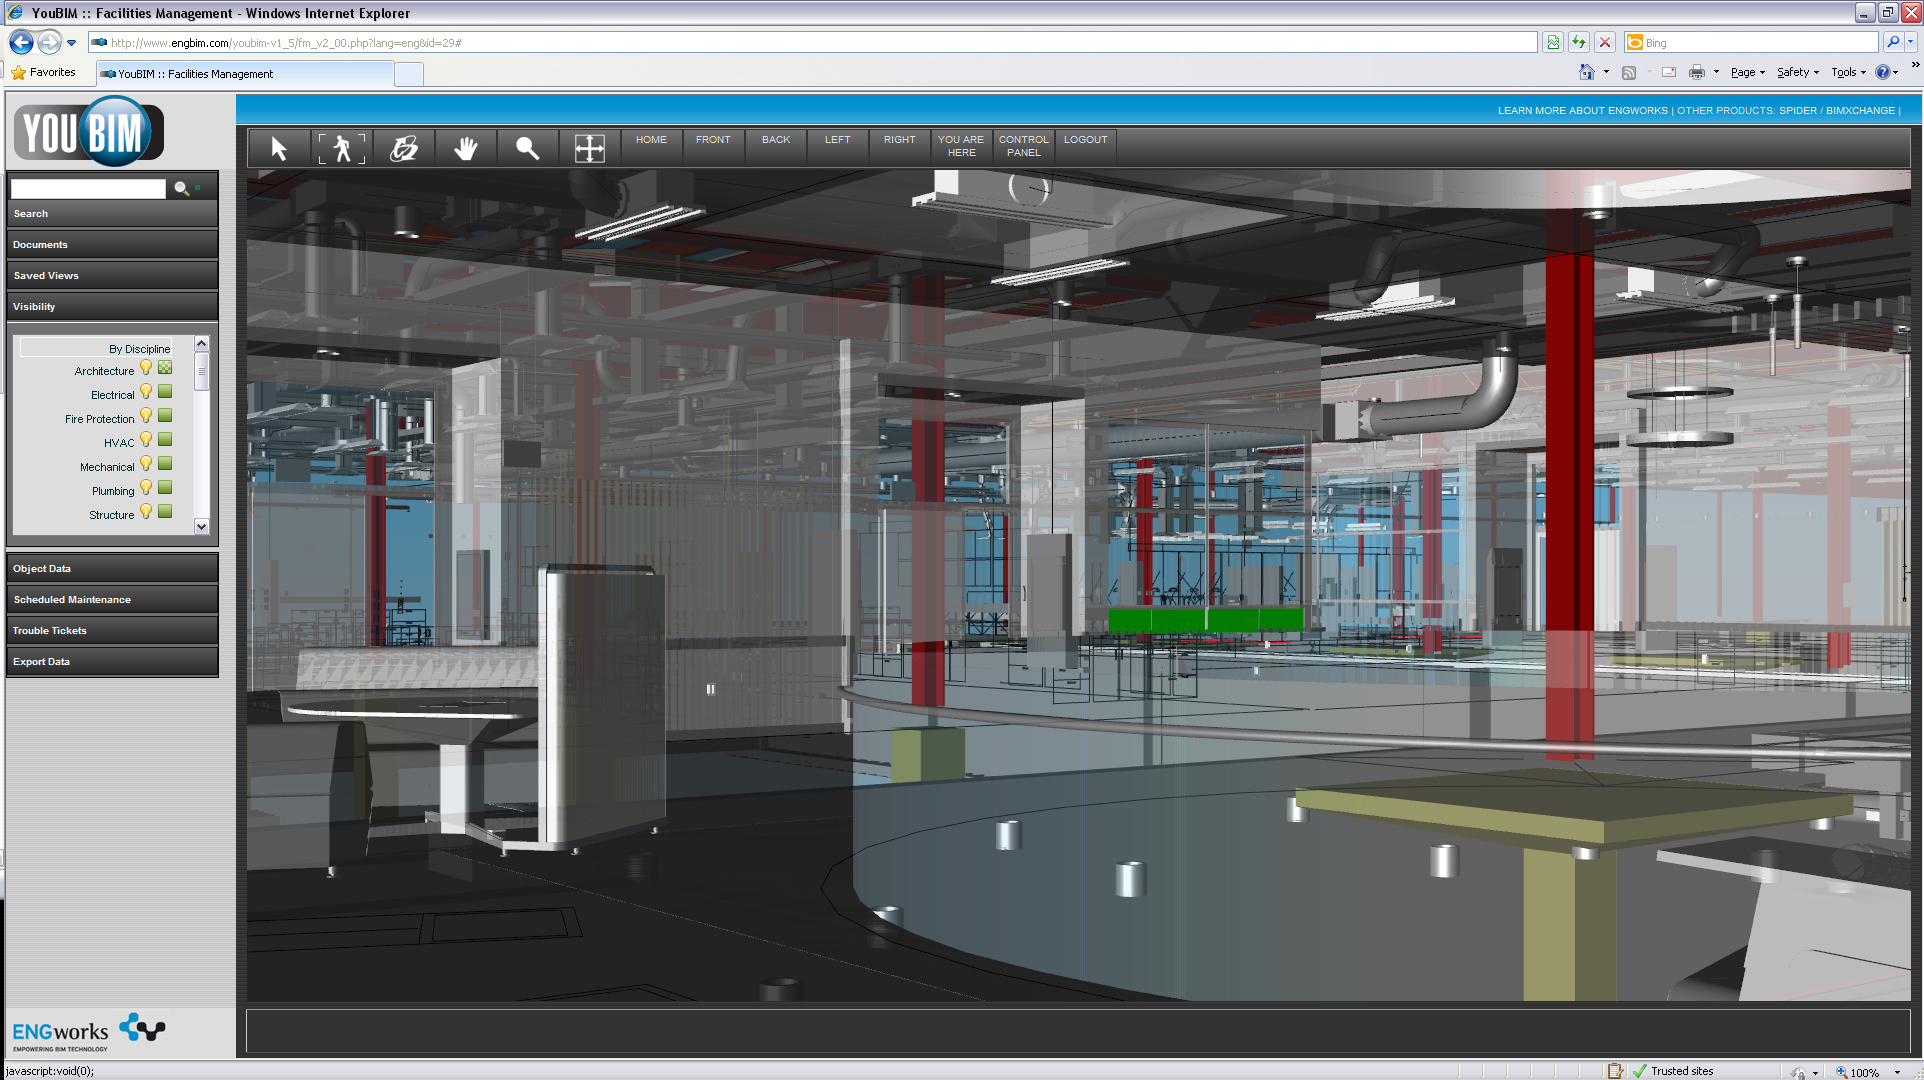 YouBIM - bim for facility management